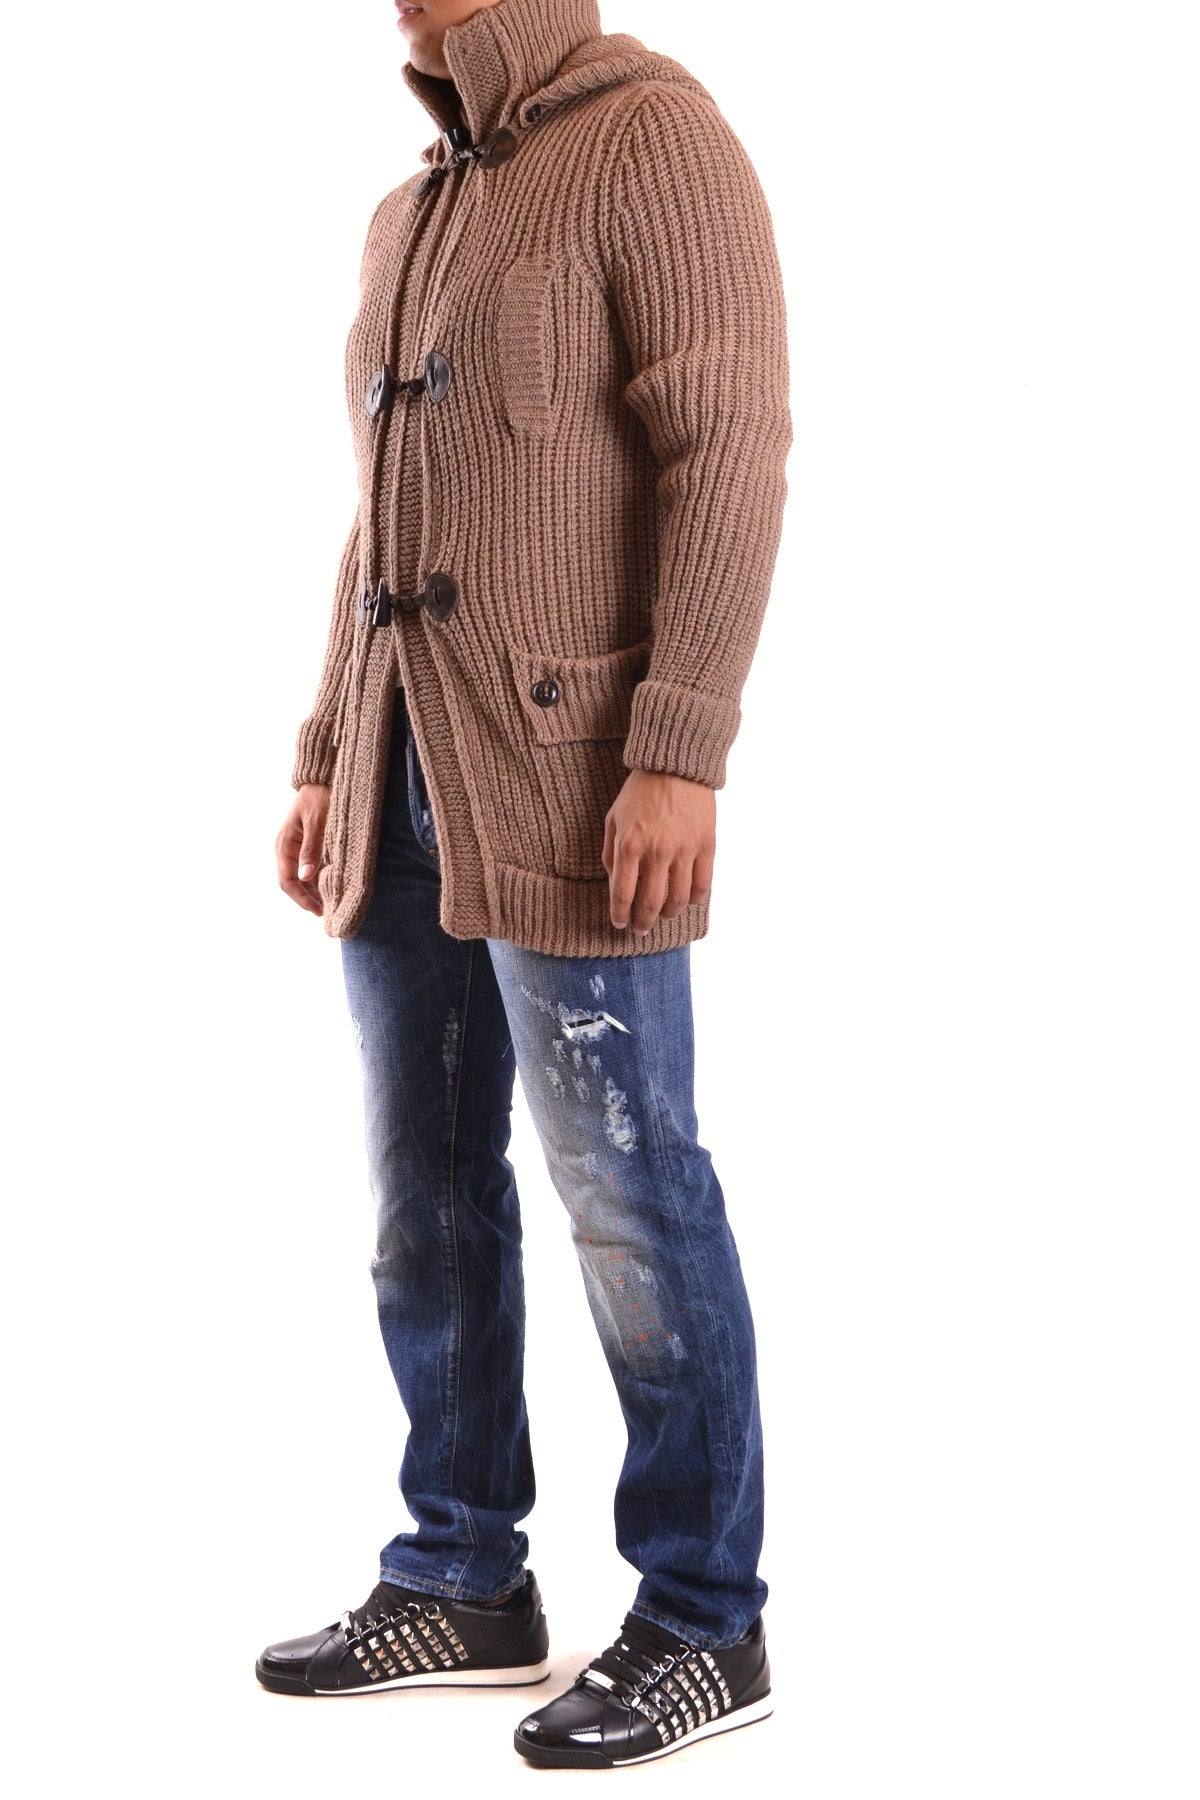 Cardigan Dsquared-Cardigan - MAN-Product Details Terms: New With LabelMain Color: Light BrownSeason: Fall / WinterSize: IntYear: 2017Clothing Type: Sweater And CardiganComposition: Acrylic 35%, Alpaca 30%, Wool 35%-Keyomi-Sook